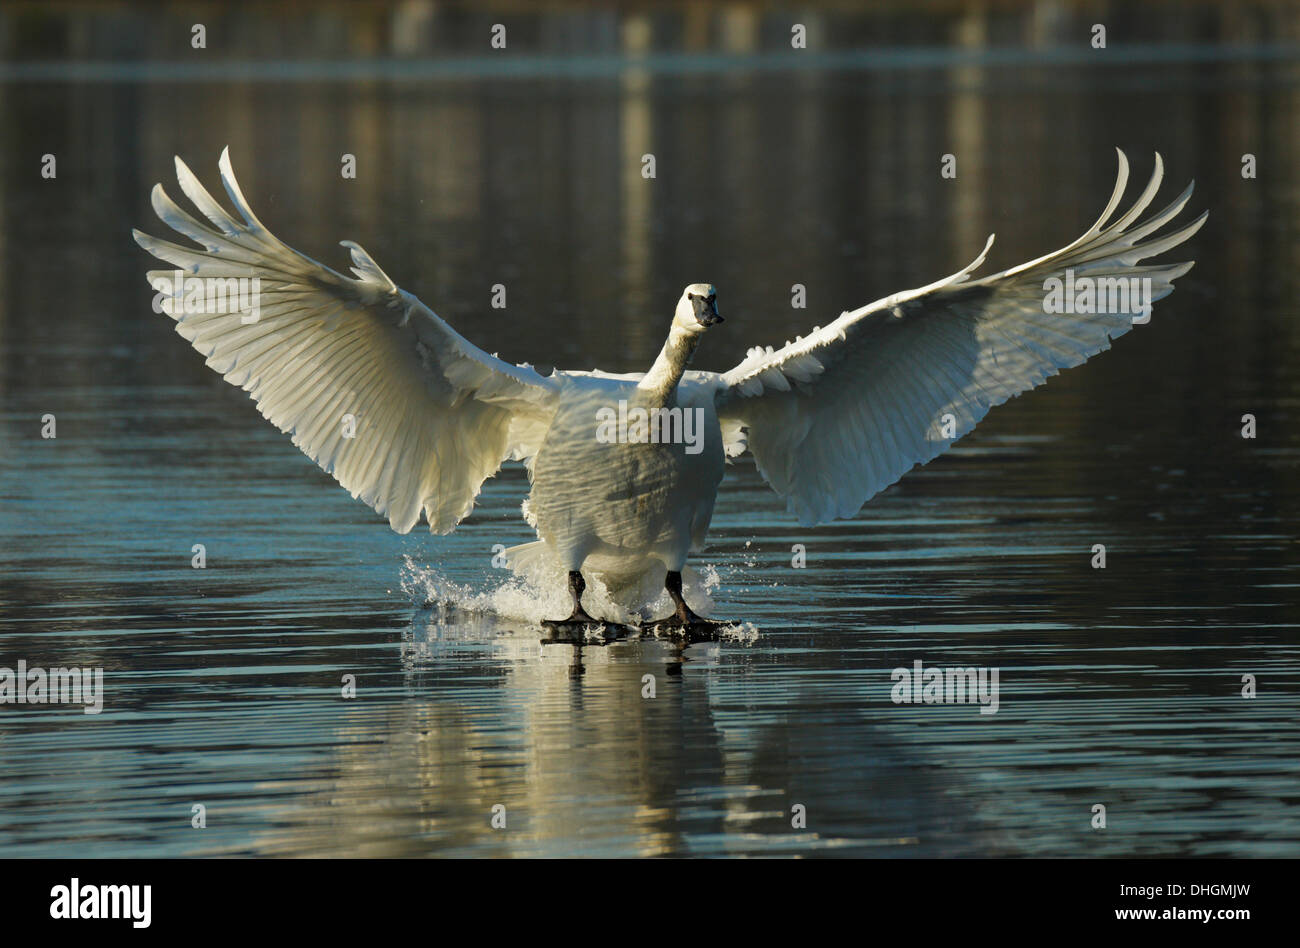 Trumpeter swan on final approach for landing in lagoon-Esquimalt Lagoon, Victoria, British Columbia, Canada. - Stock Image